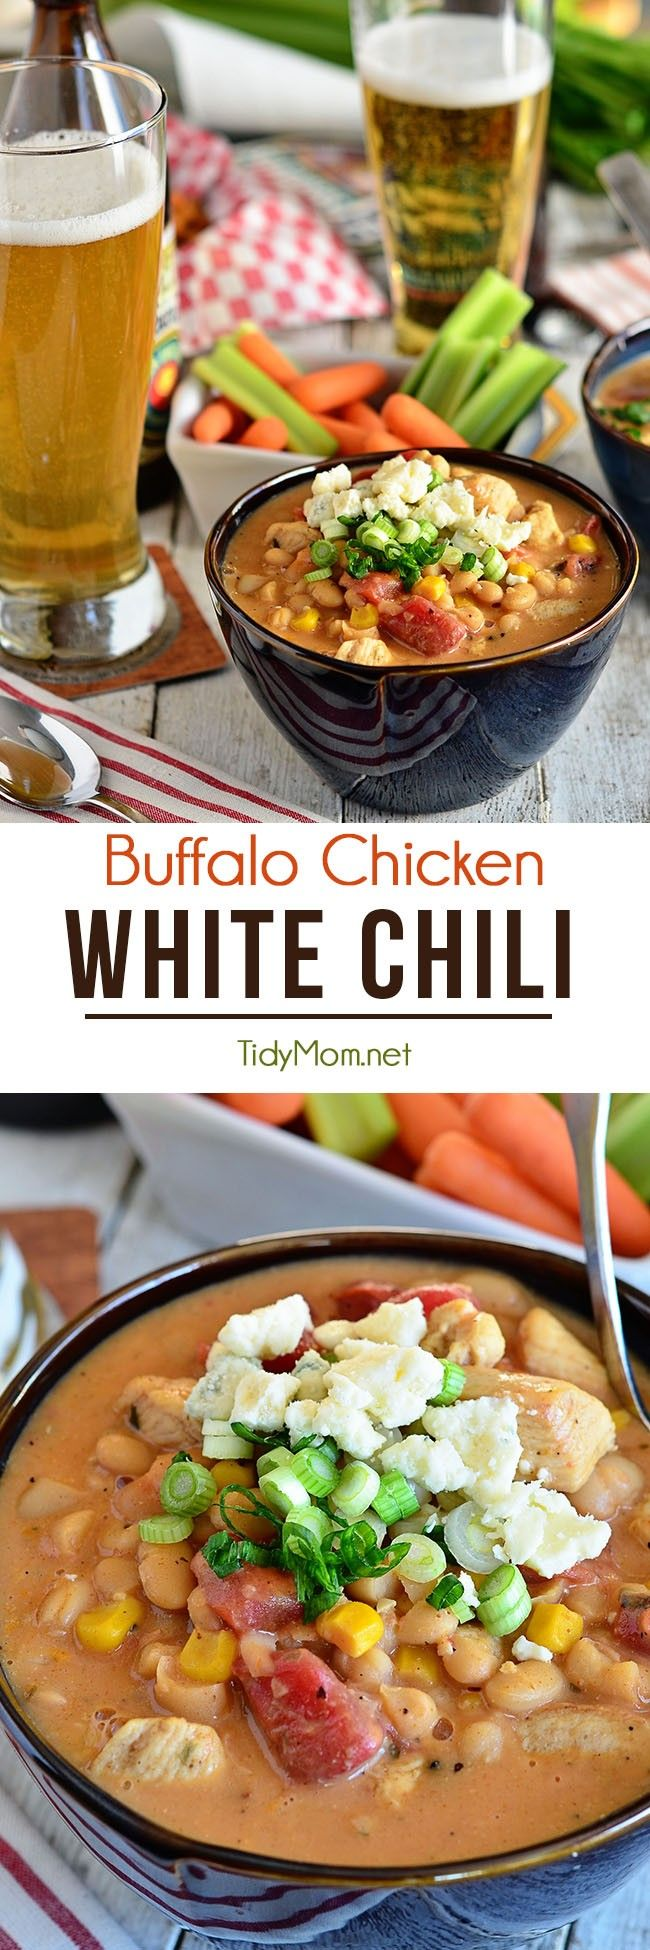 This easy Buffalo Chicken White Chili recipe is a keeper! It has a nice mild heat from the buffalo sauce and fire roasted tomatoes, while the sweet corn, Bush's White Chili Beans and ranch dressing mix really make this chili something special. The chili is creamy, rich and bold. Fills you up and keeps you warm. It earns a spot in our dinner rotation. Get the recipe at TidyMom.net